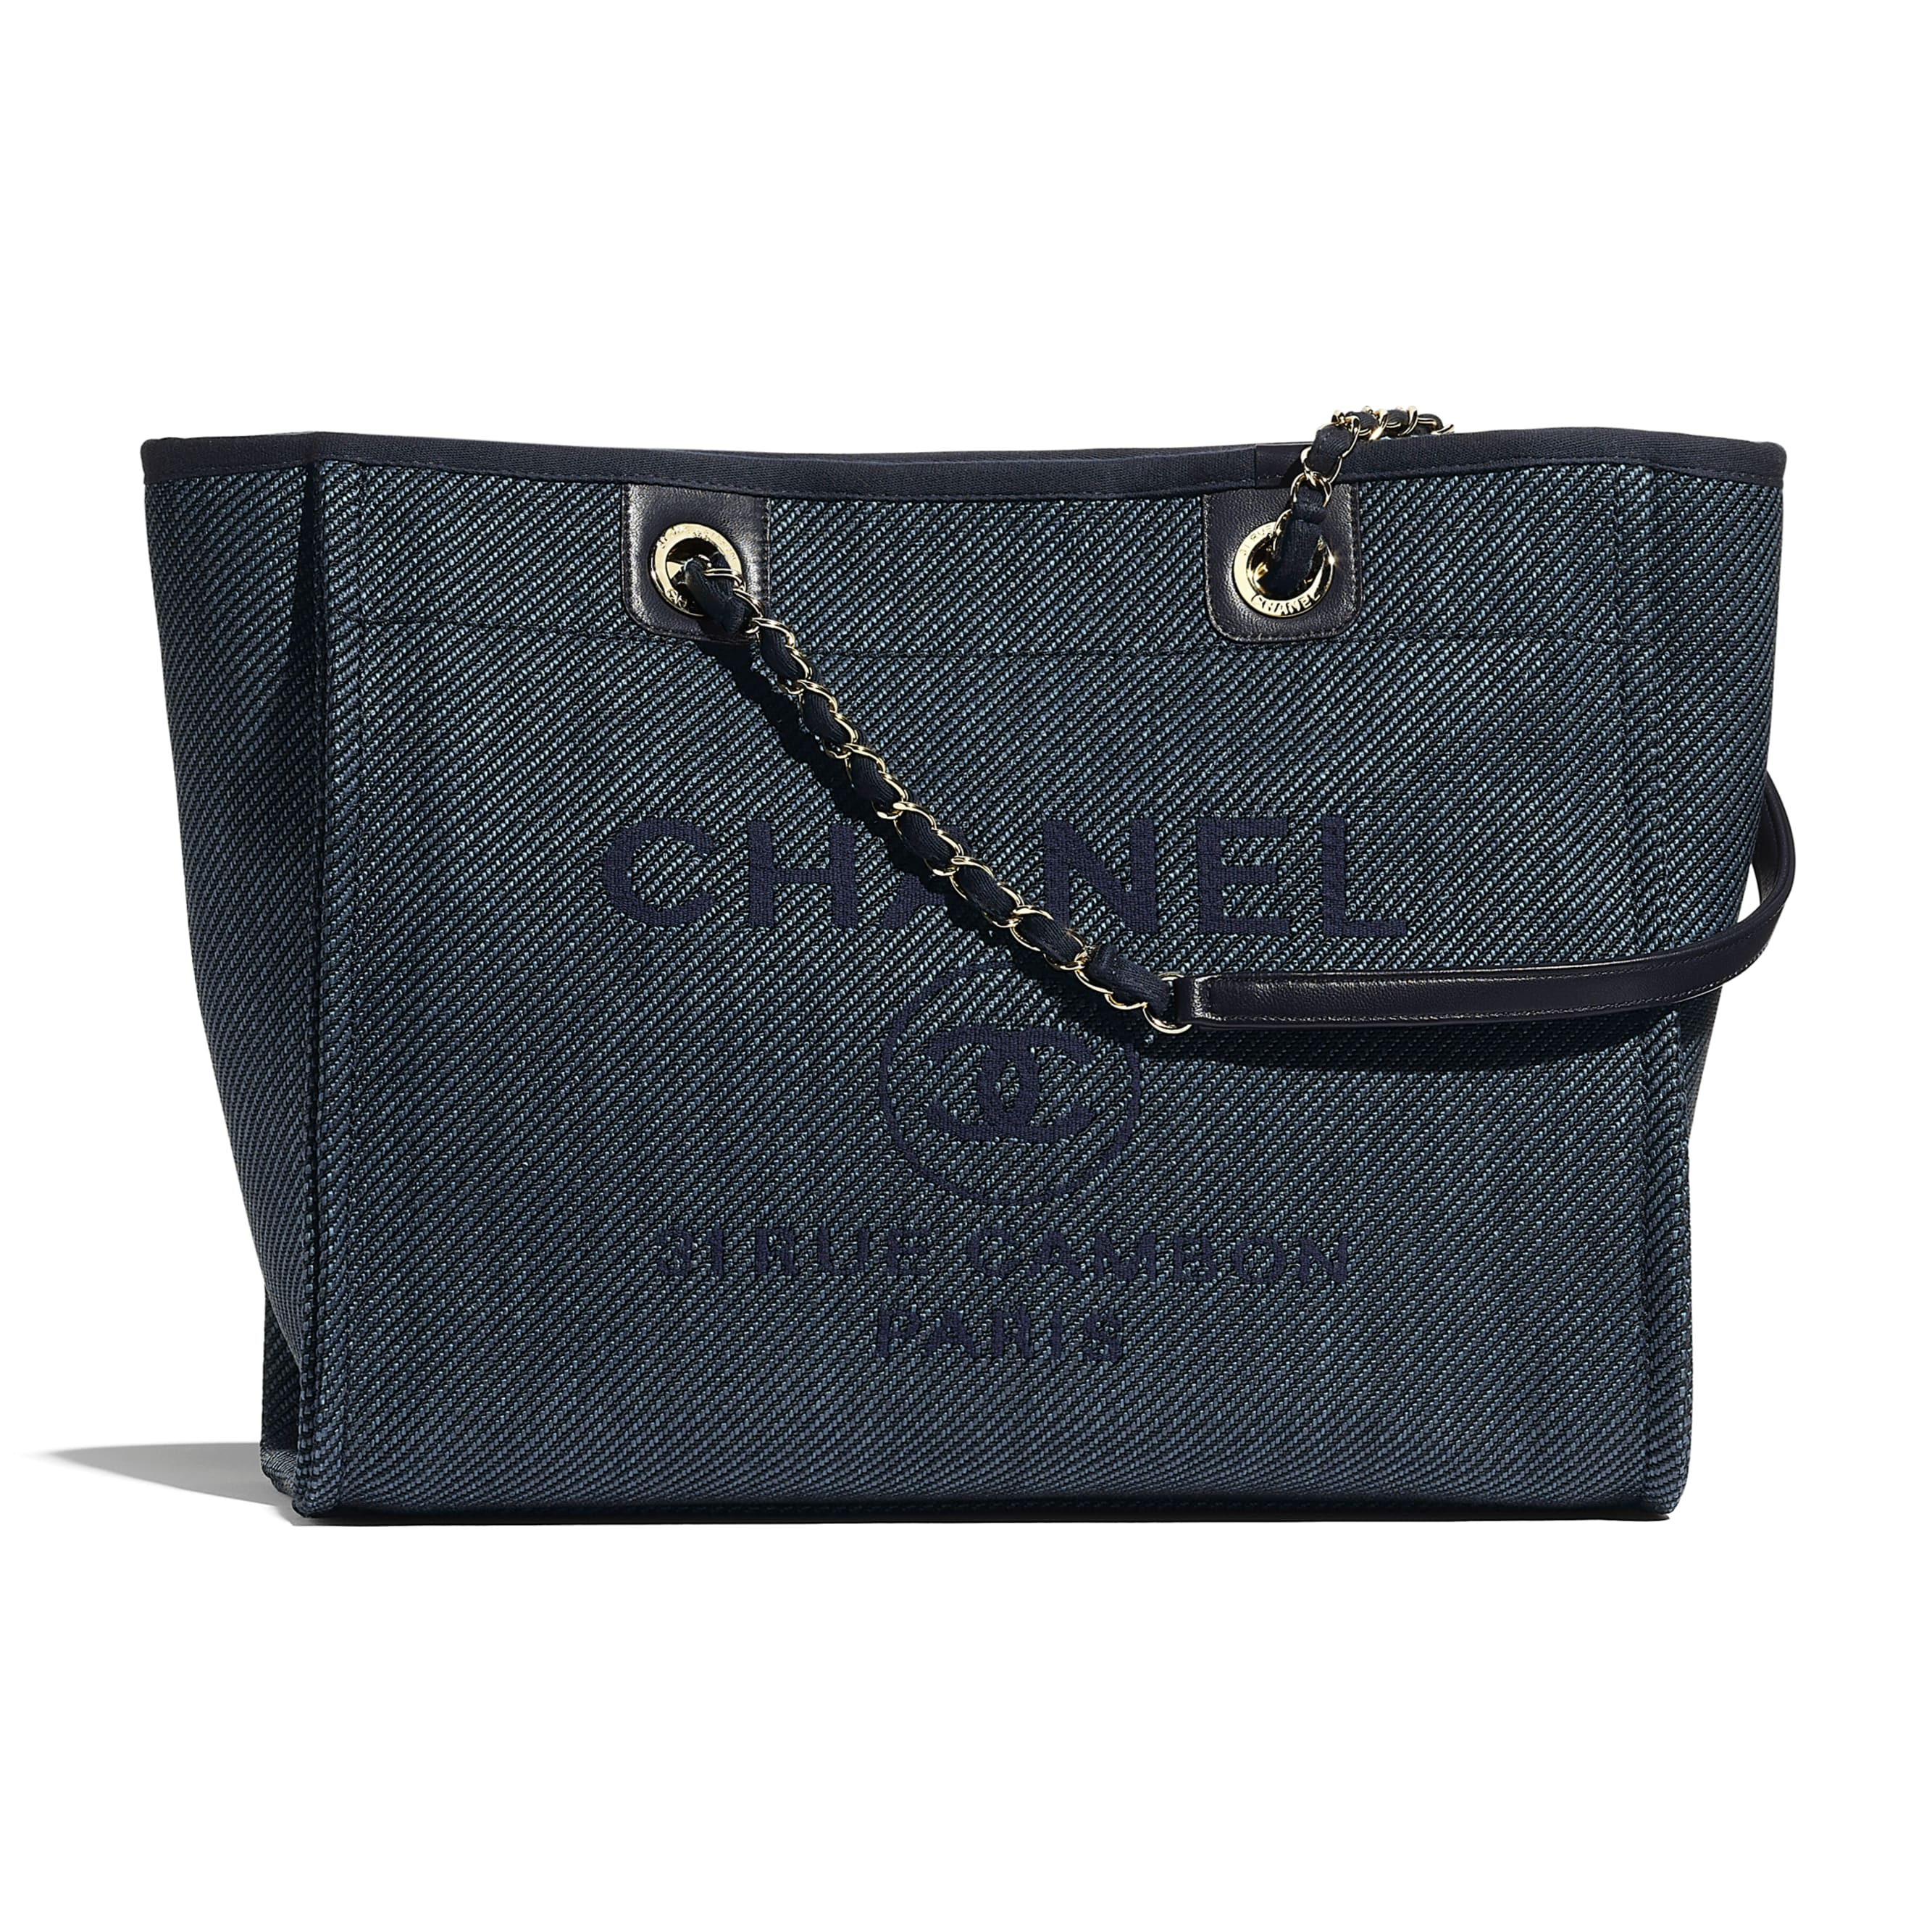 Large Tote - Navy Blue - Mixed Fibres, Calfskin & Gold-Tone Metal - CHANEL - Default view - see standard sized version